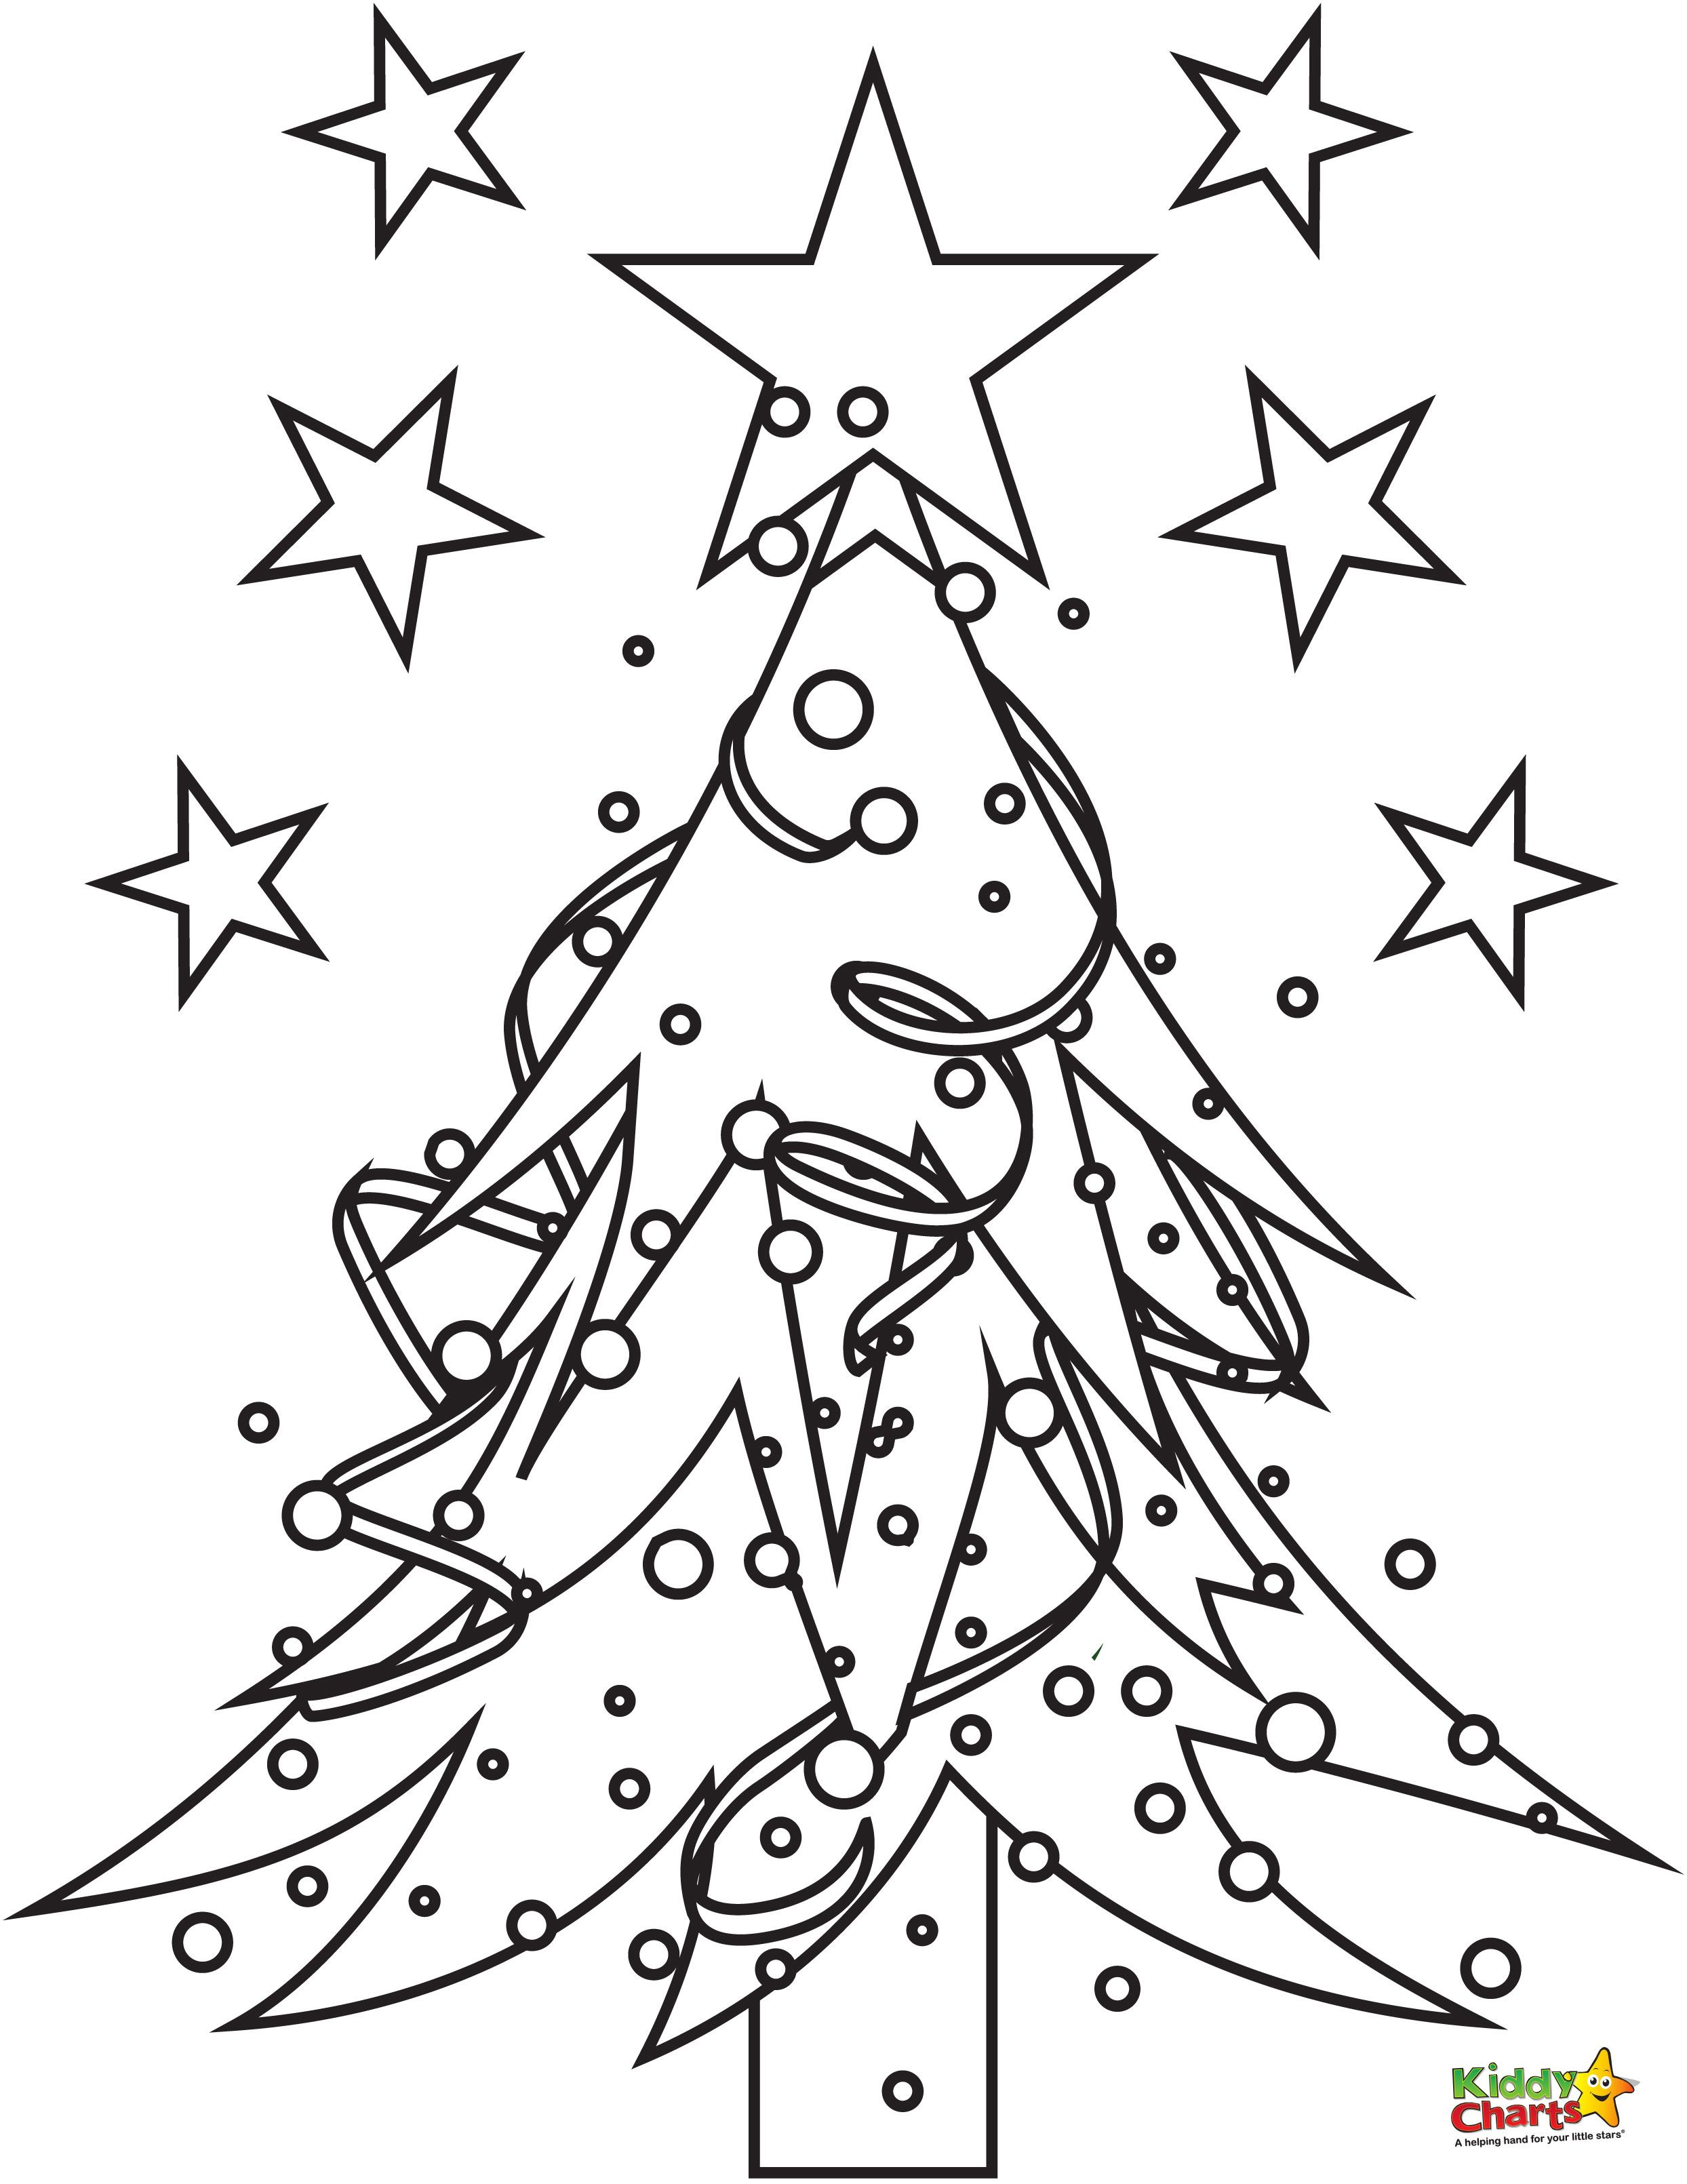 Christmas Tree Coloring Page Christmas Tree Coloring Page Tree Coloring Page Christmas Coloring Pages